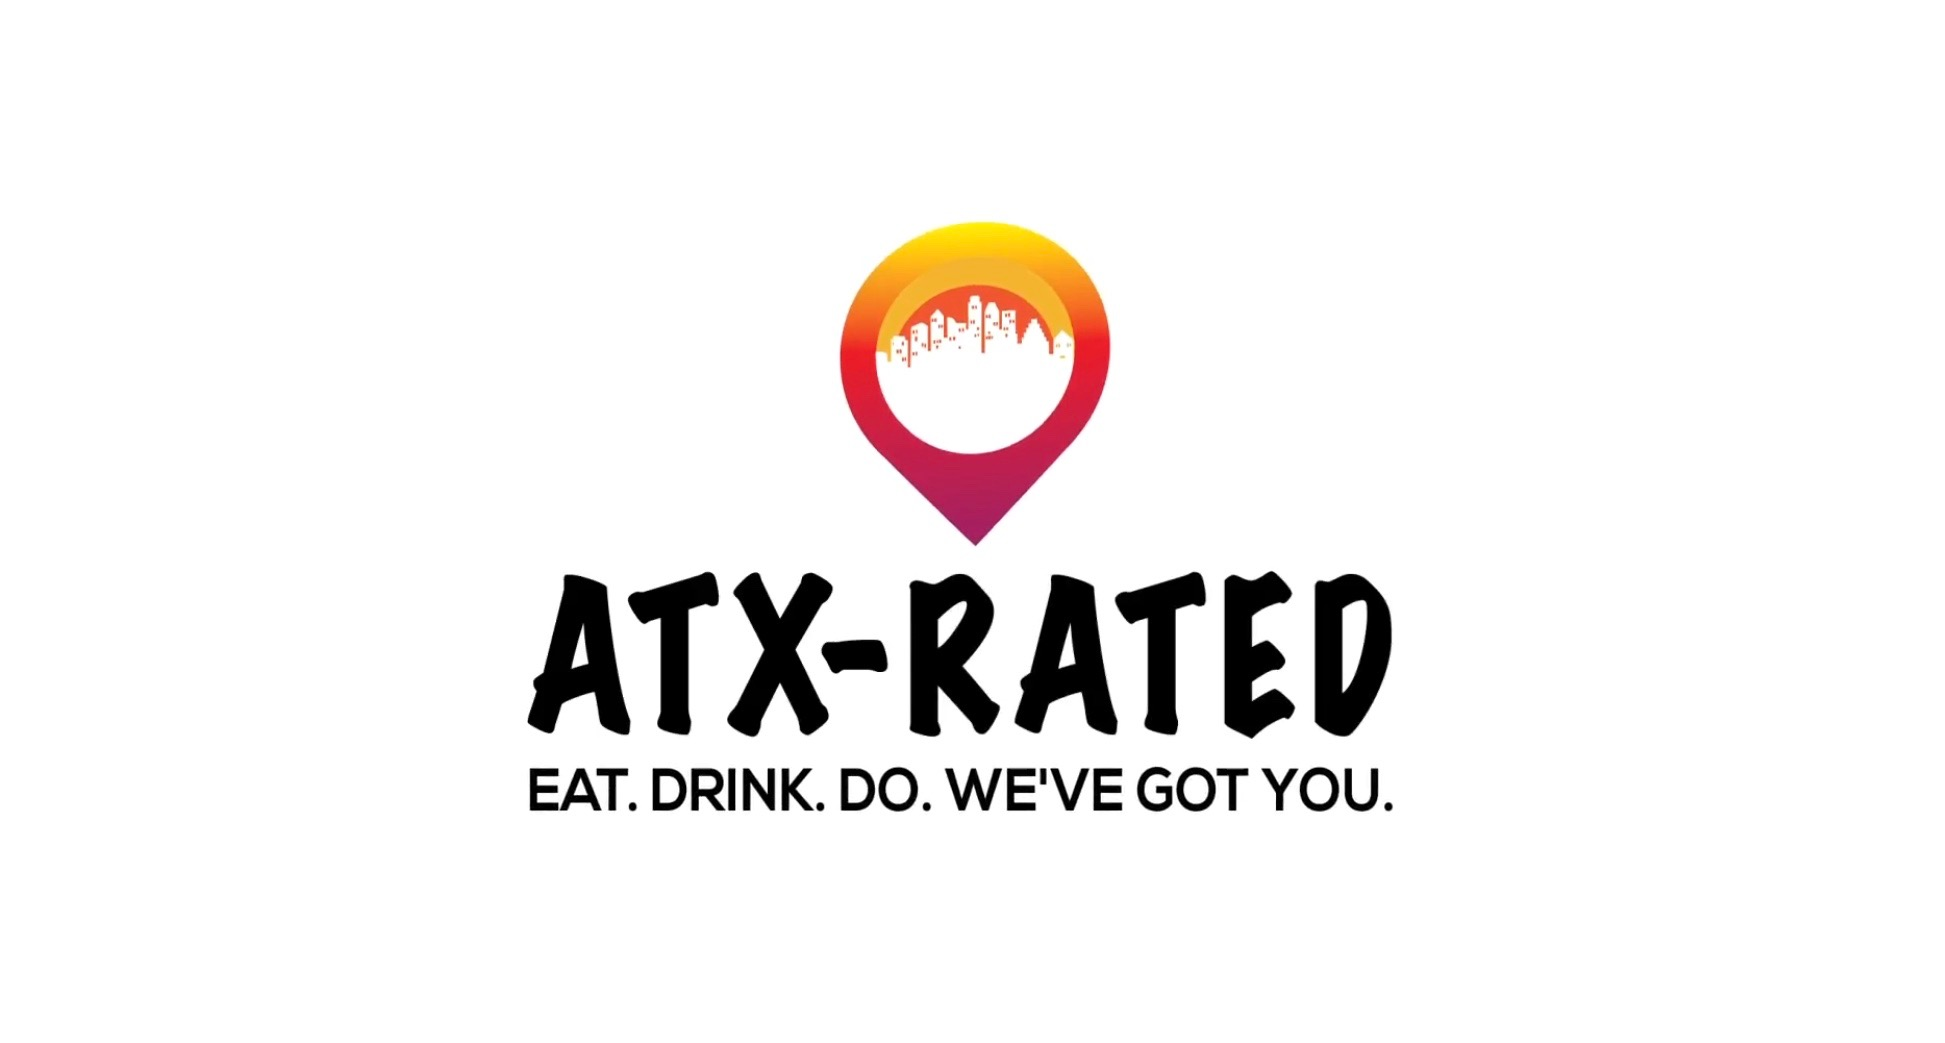 ATX-Rated